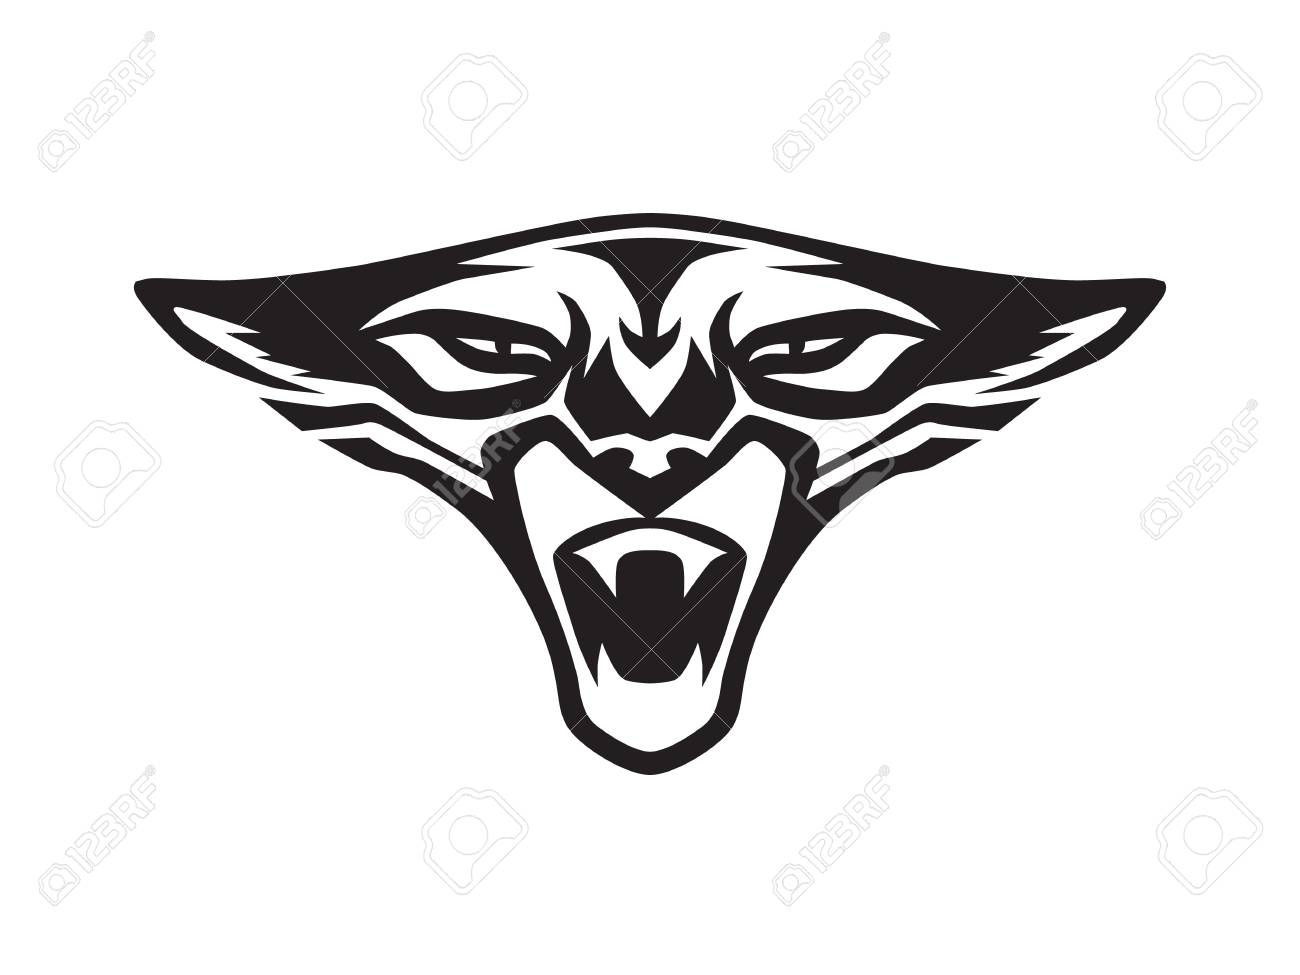 Black Panther Face Roaring On White Background Wild Aggressive Royalty Free Cliparts Vectors And Stock Illustration Image 107857323